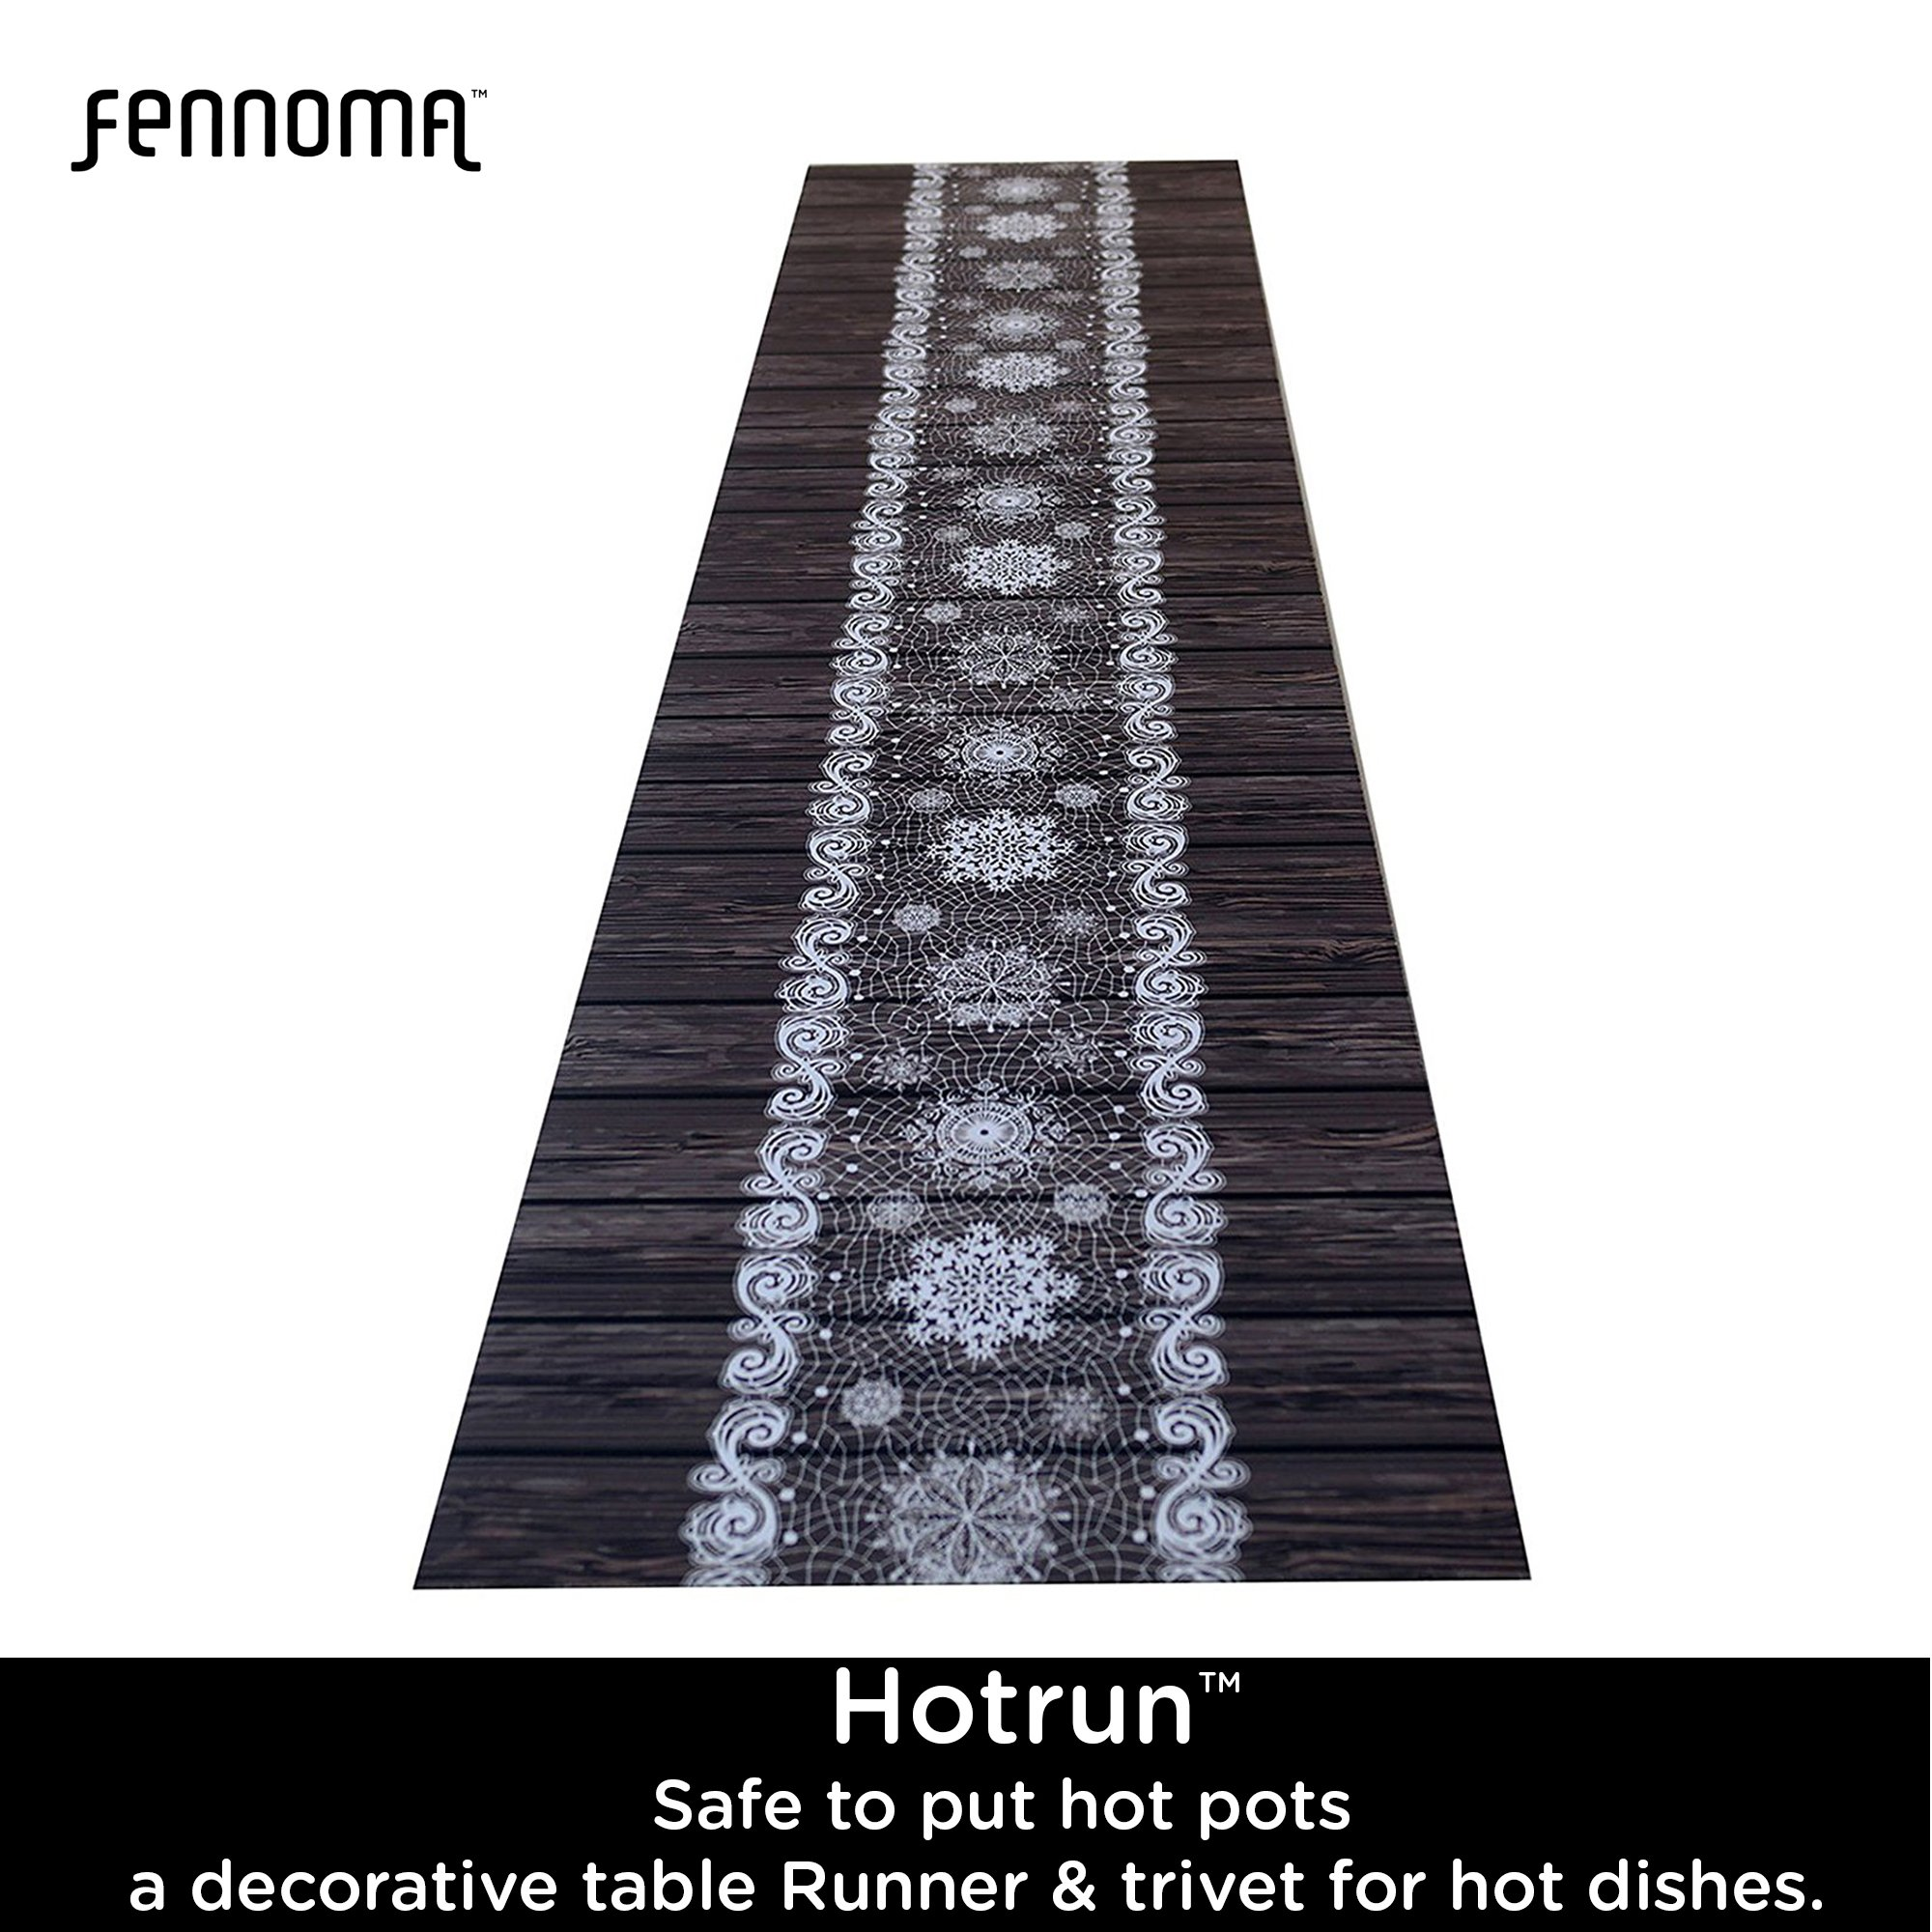 Hotrun Decorative Trivet and Kitchen Table Runners Handles Heat Up to 356F Anti Slip Hand Washable and Convenient for Hot Dishes and Pots (Wood) by Fennoma (Image #7)